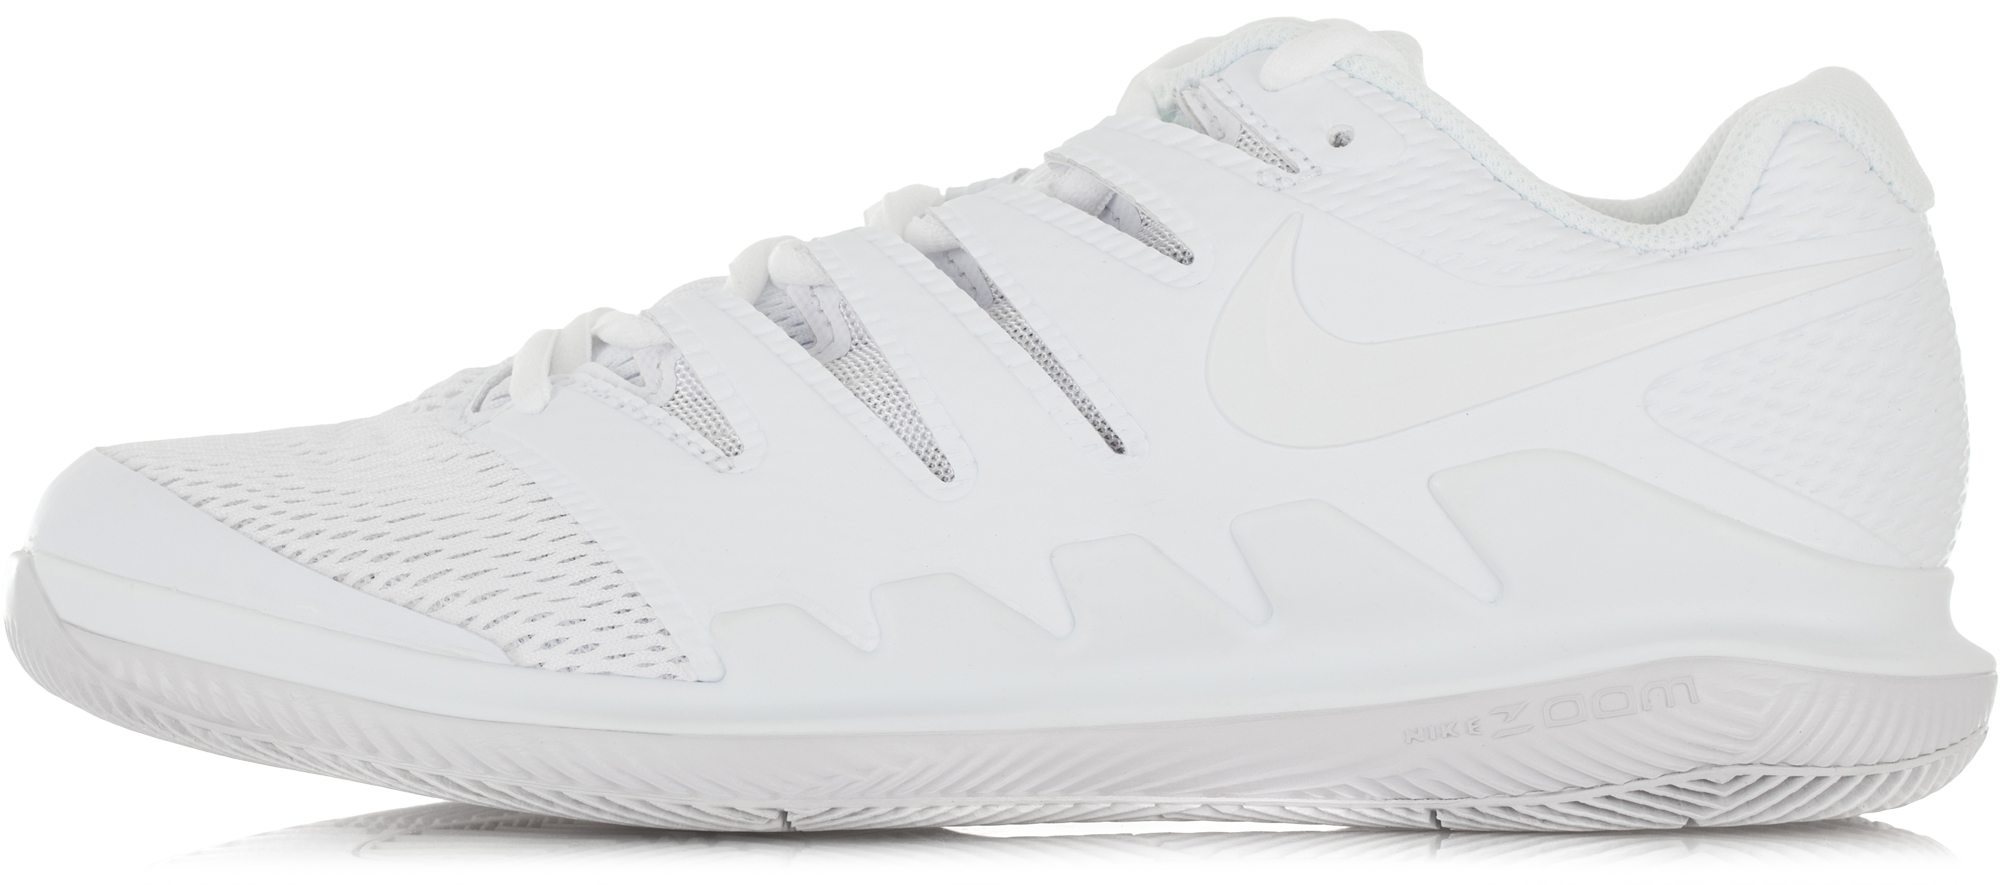 Nike Кроссовки женские Nike Air Zoom Vapor X, размер 39.5 nike кроссовки женские nike zoom cage 3 размер 41